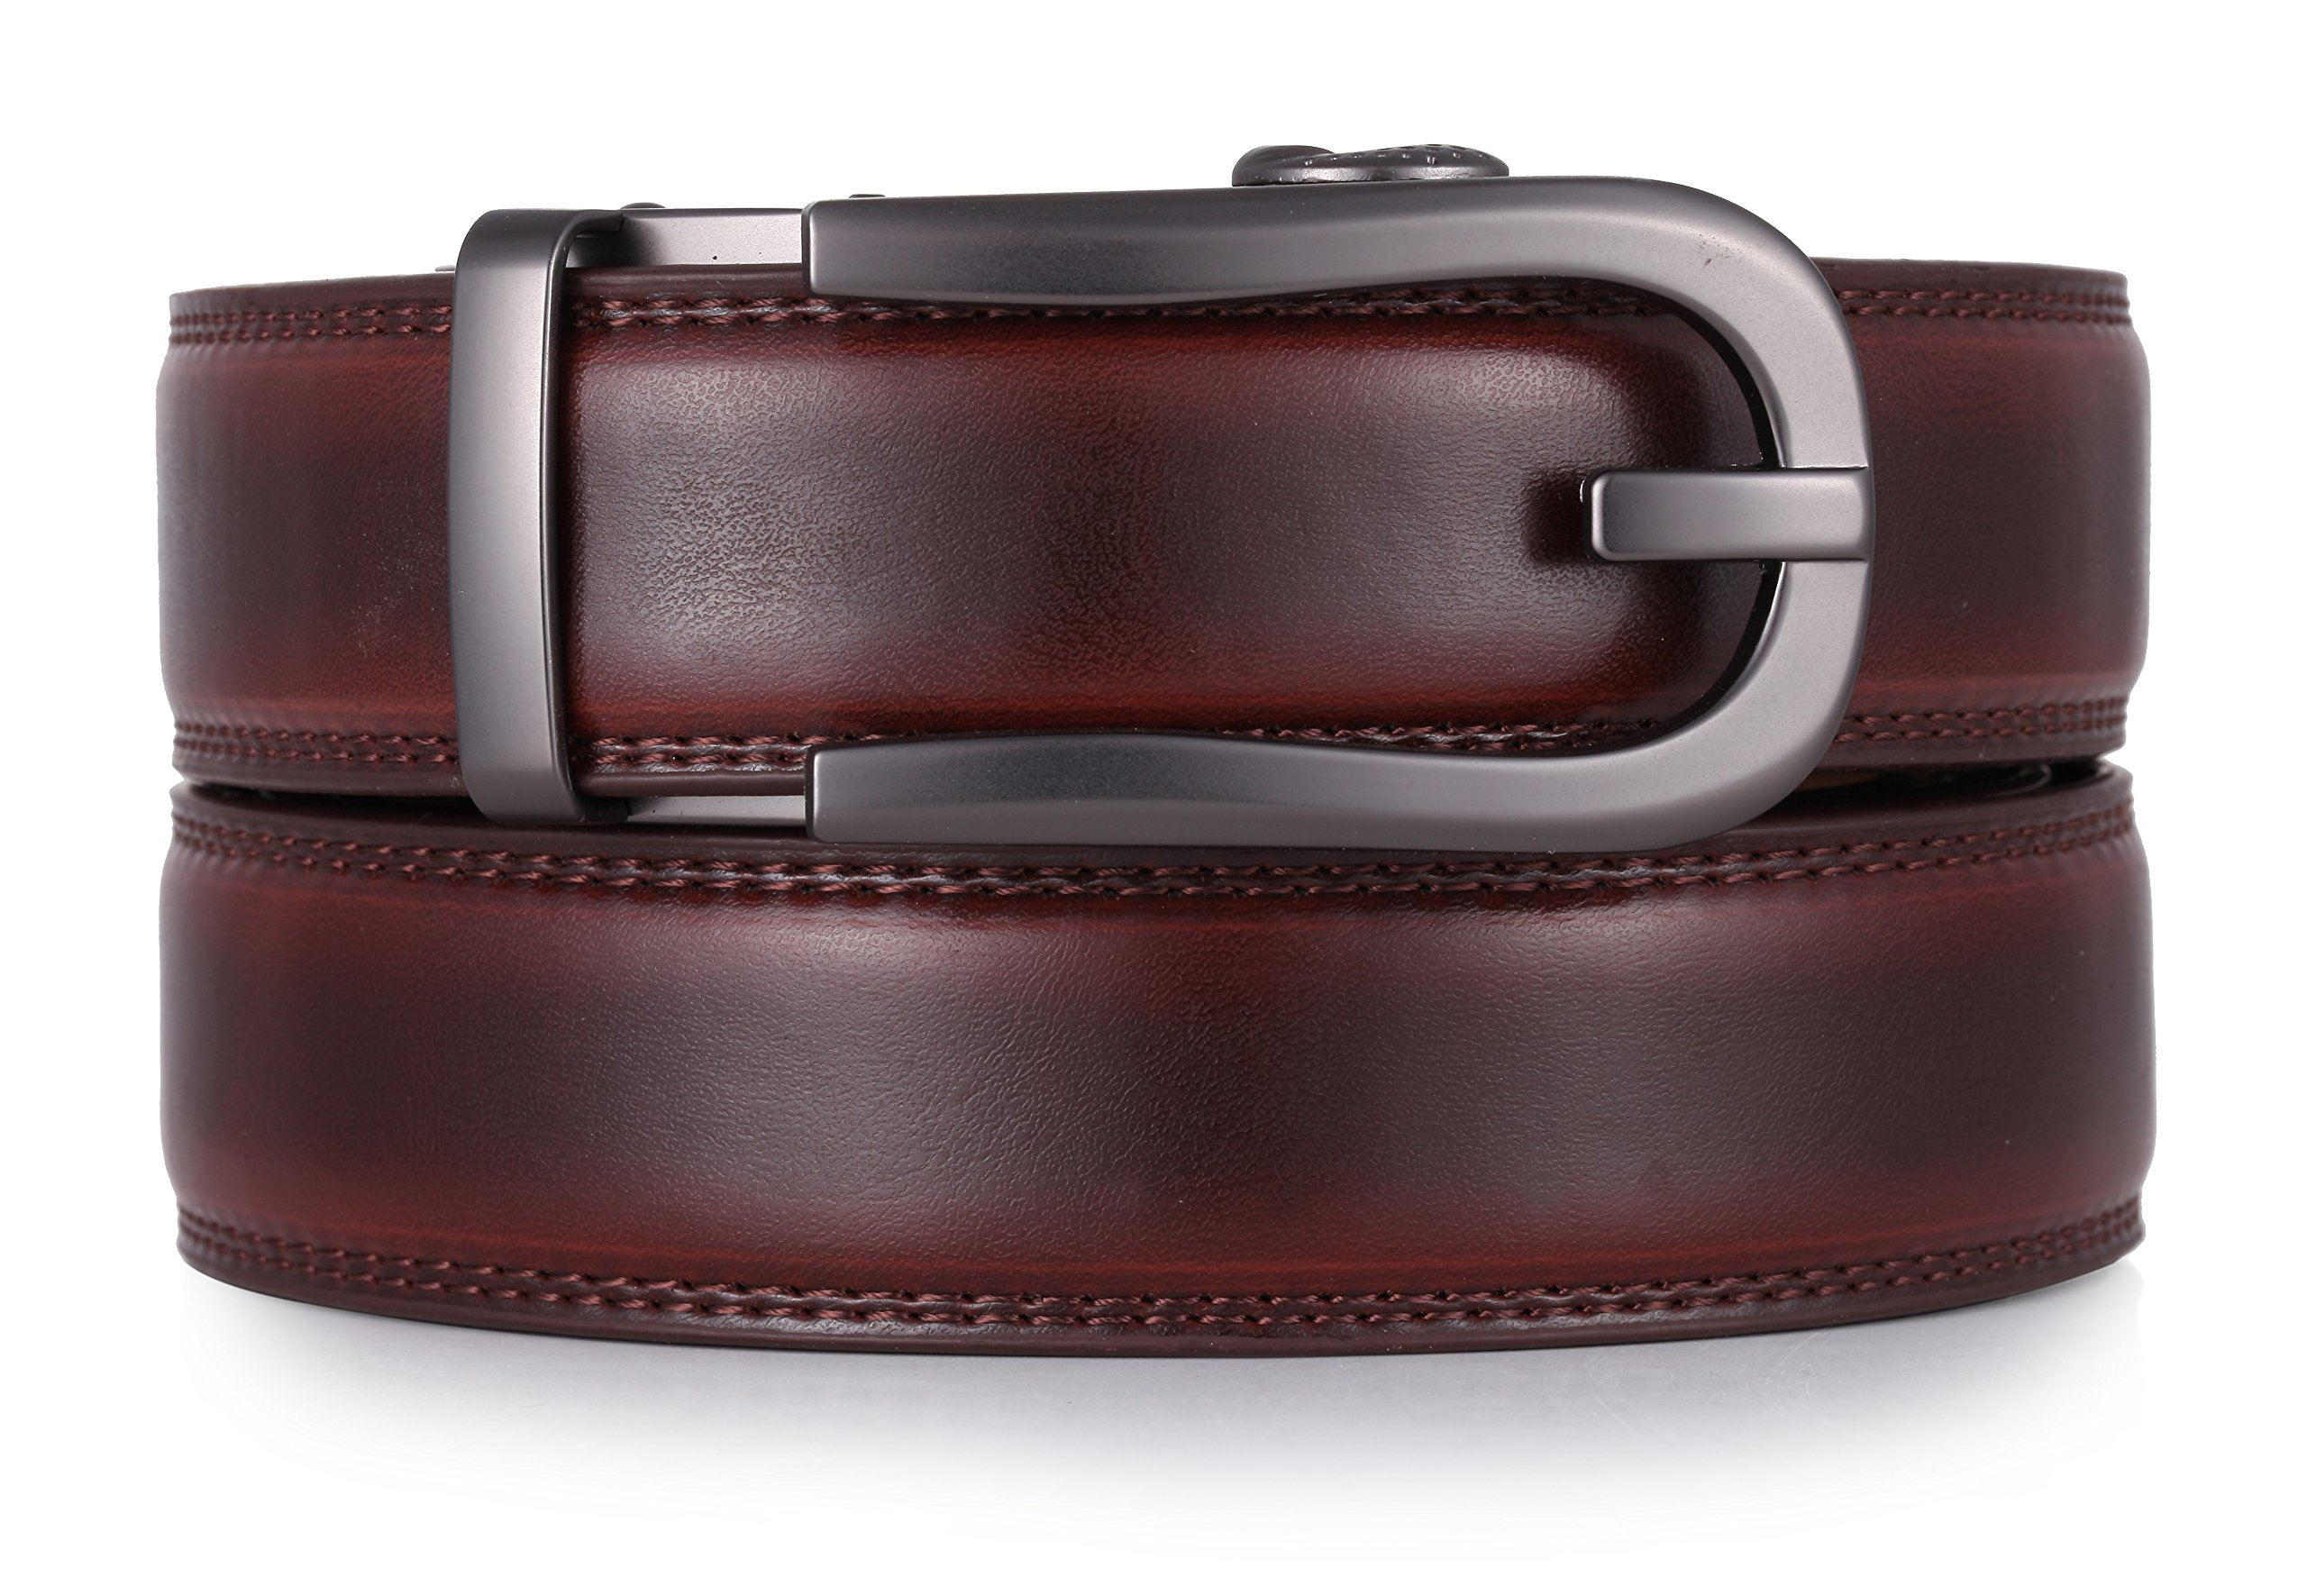 Mio Marino Ratchet Click Belts for Men - Mens Comfort Genuine Leather Dress Belt - Automatic Buckle - Style 186 - Mahogany - Adjustable from 28'' to 44'' Waist